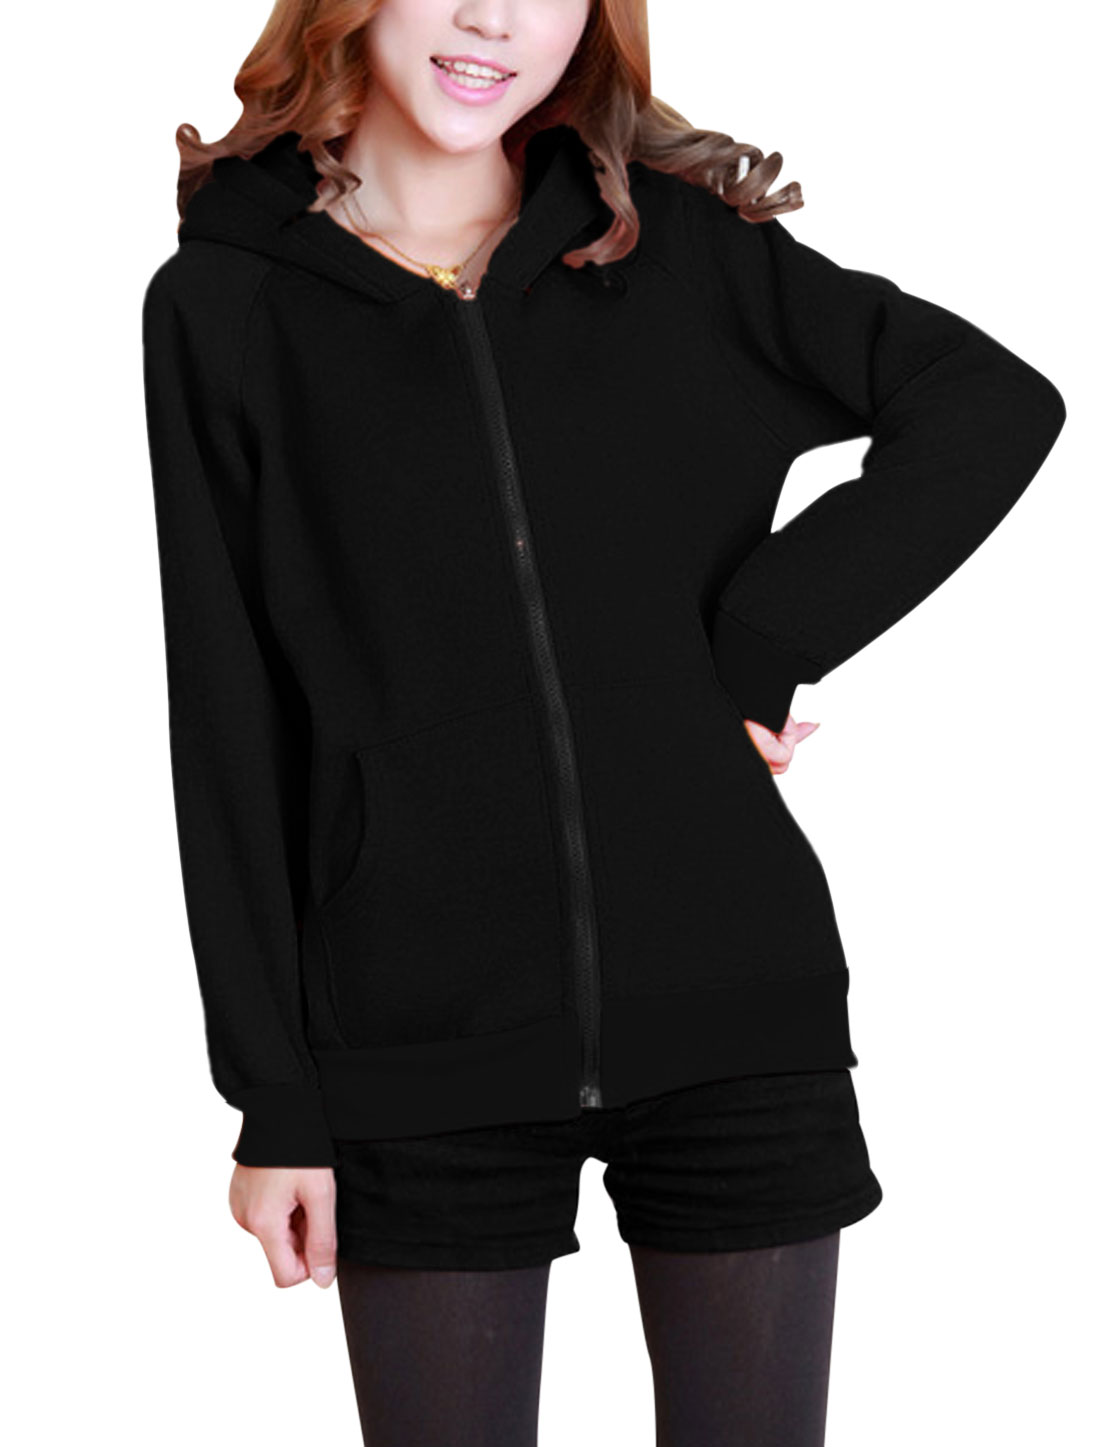 Lady Zip Fly Long Sleeve Bear Ears Fleece Lined Cute Hoodie Coat Black XS